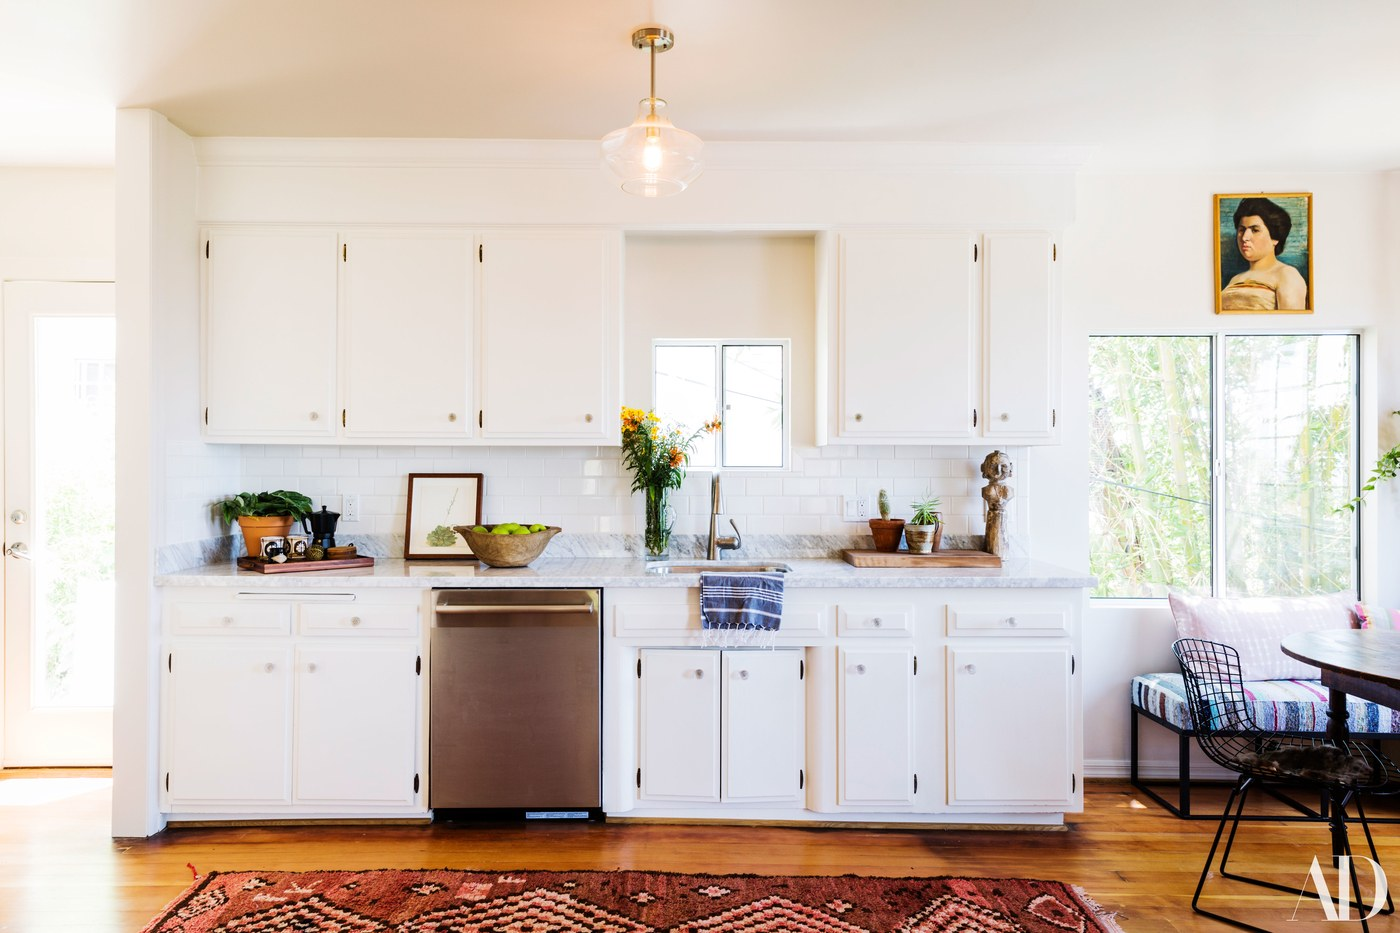 Blazek kept the 90-year-old home light and airy to complement the incredible view, but added pops of color and vintage pieces to embrace List's bohemian style.